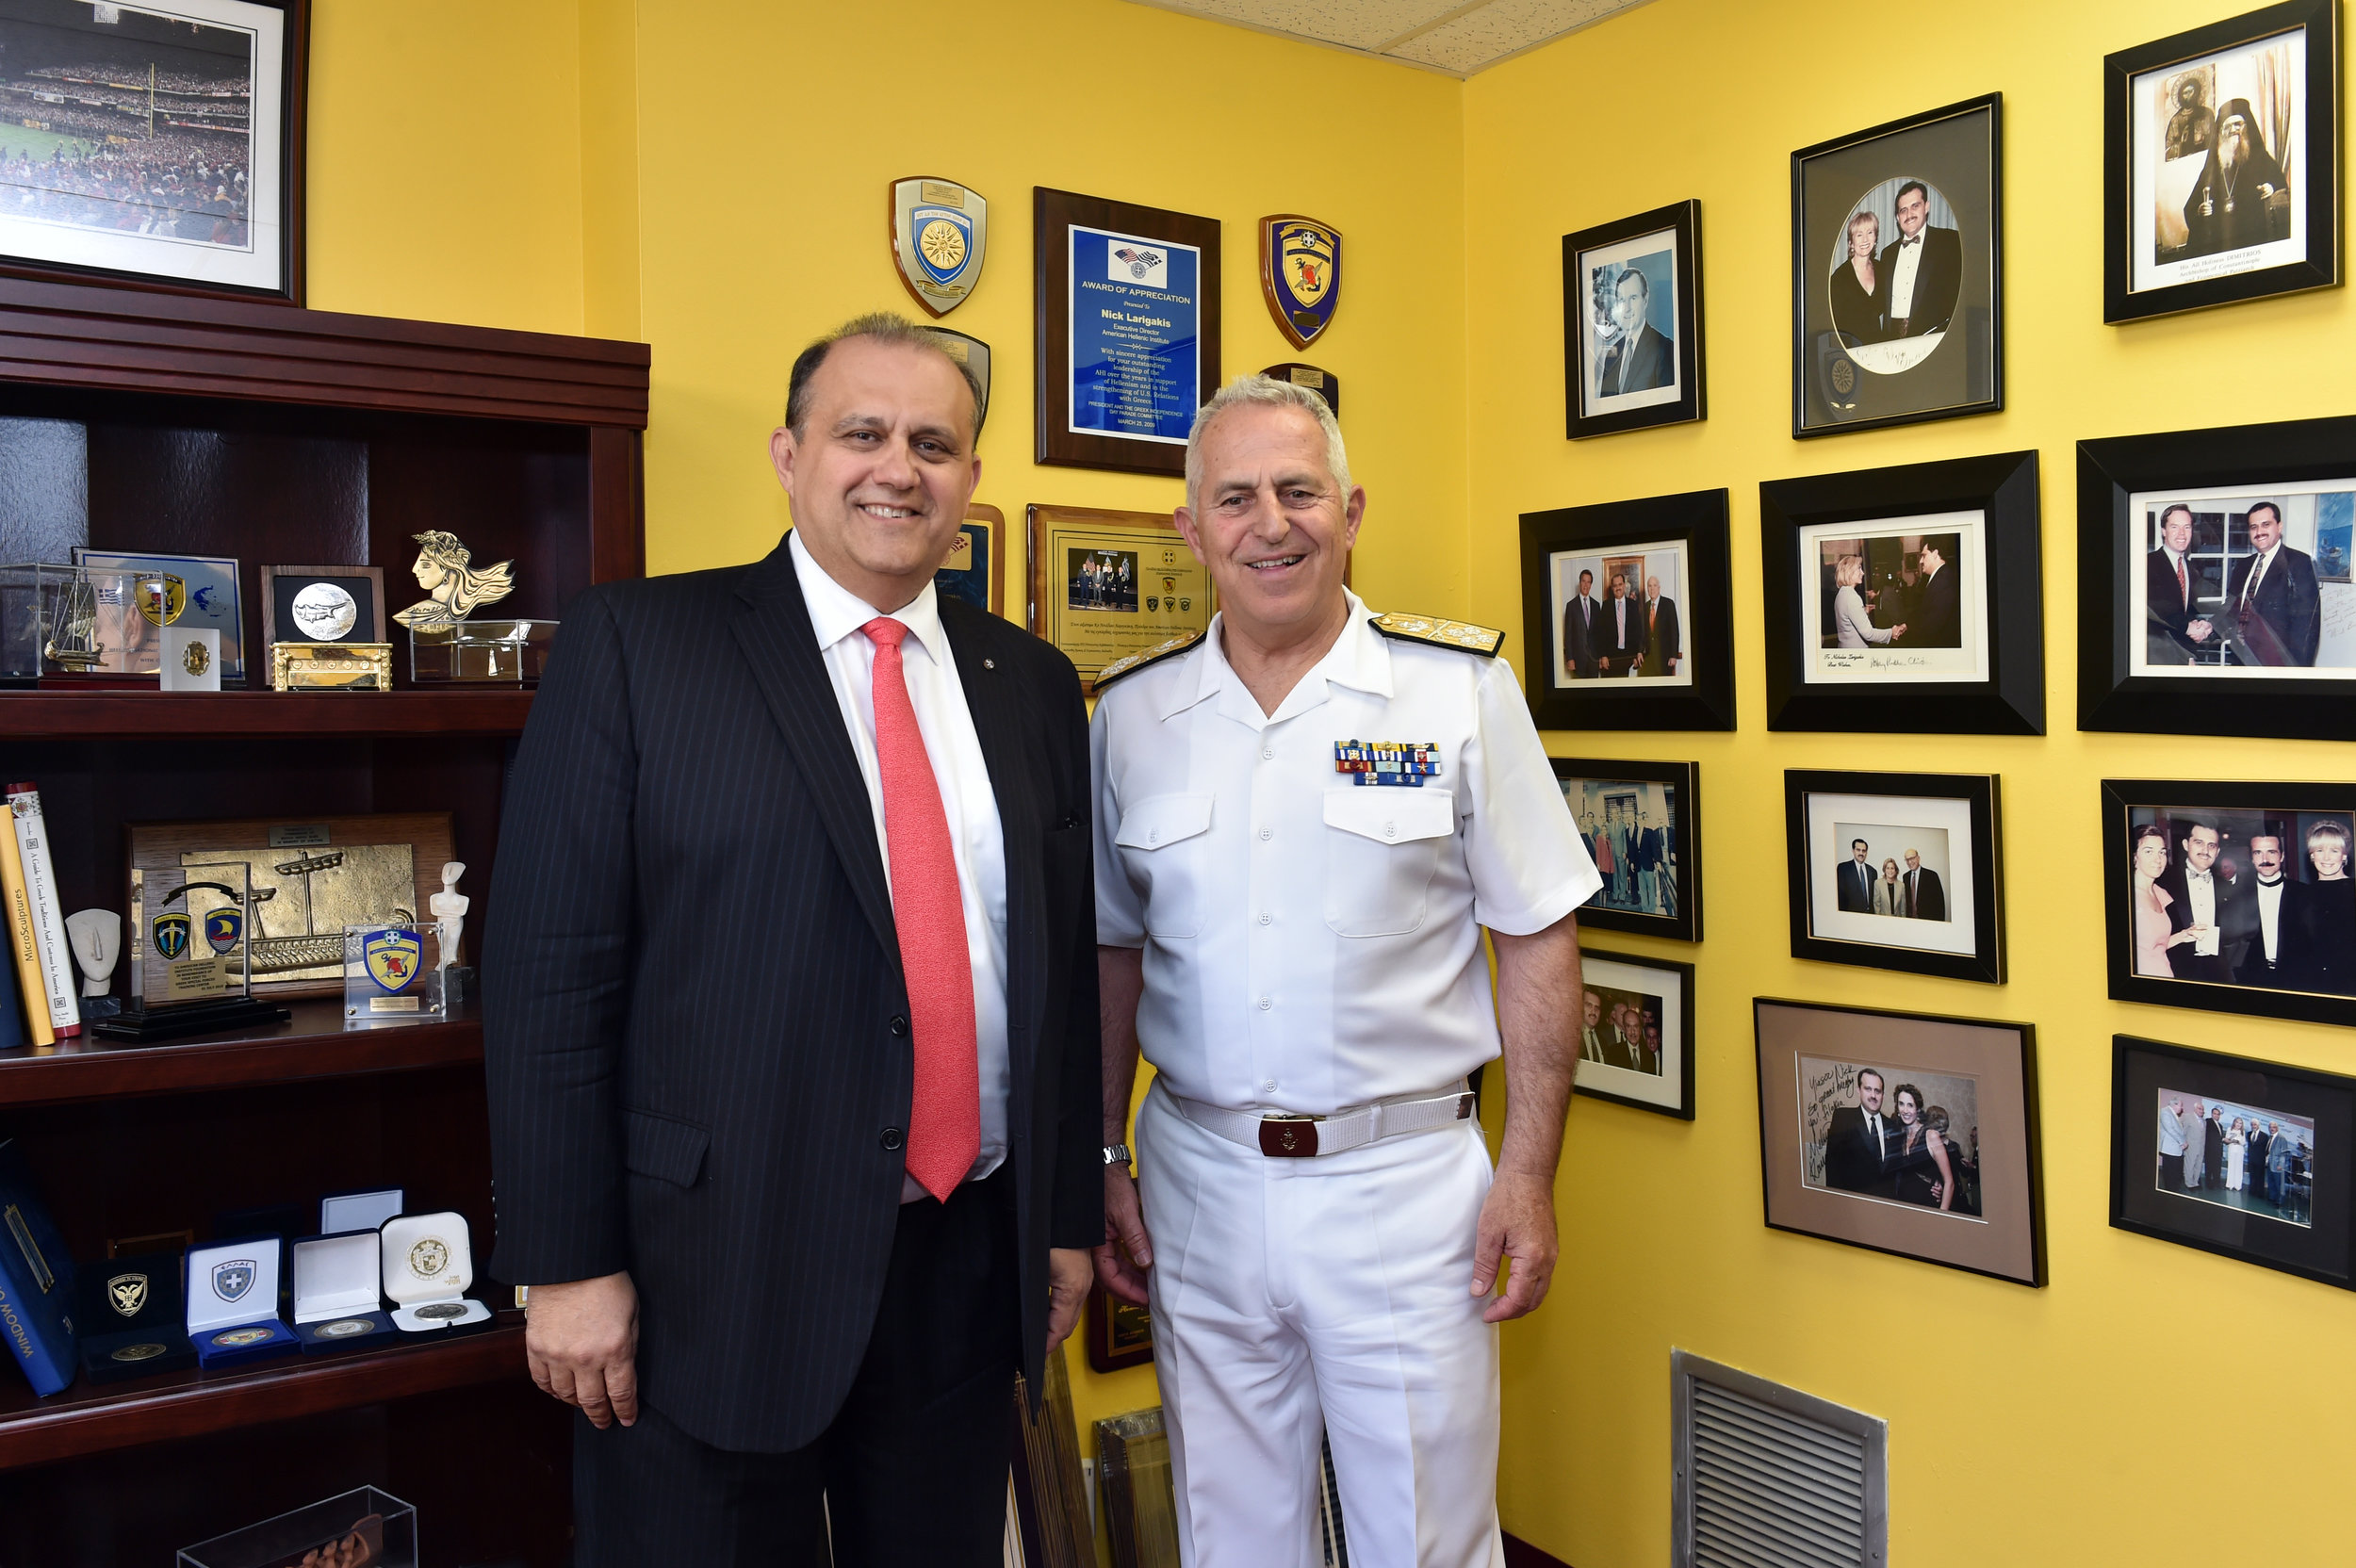 Admiral Apostolakis visiting with Larigakis for private meeting in his office.